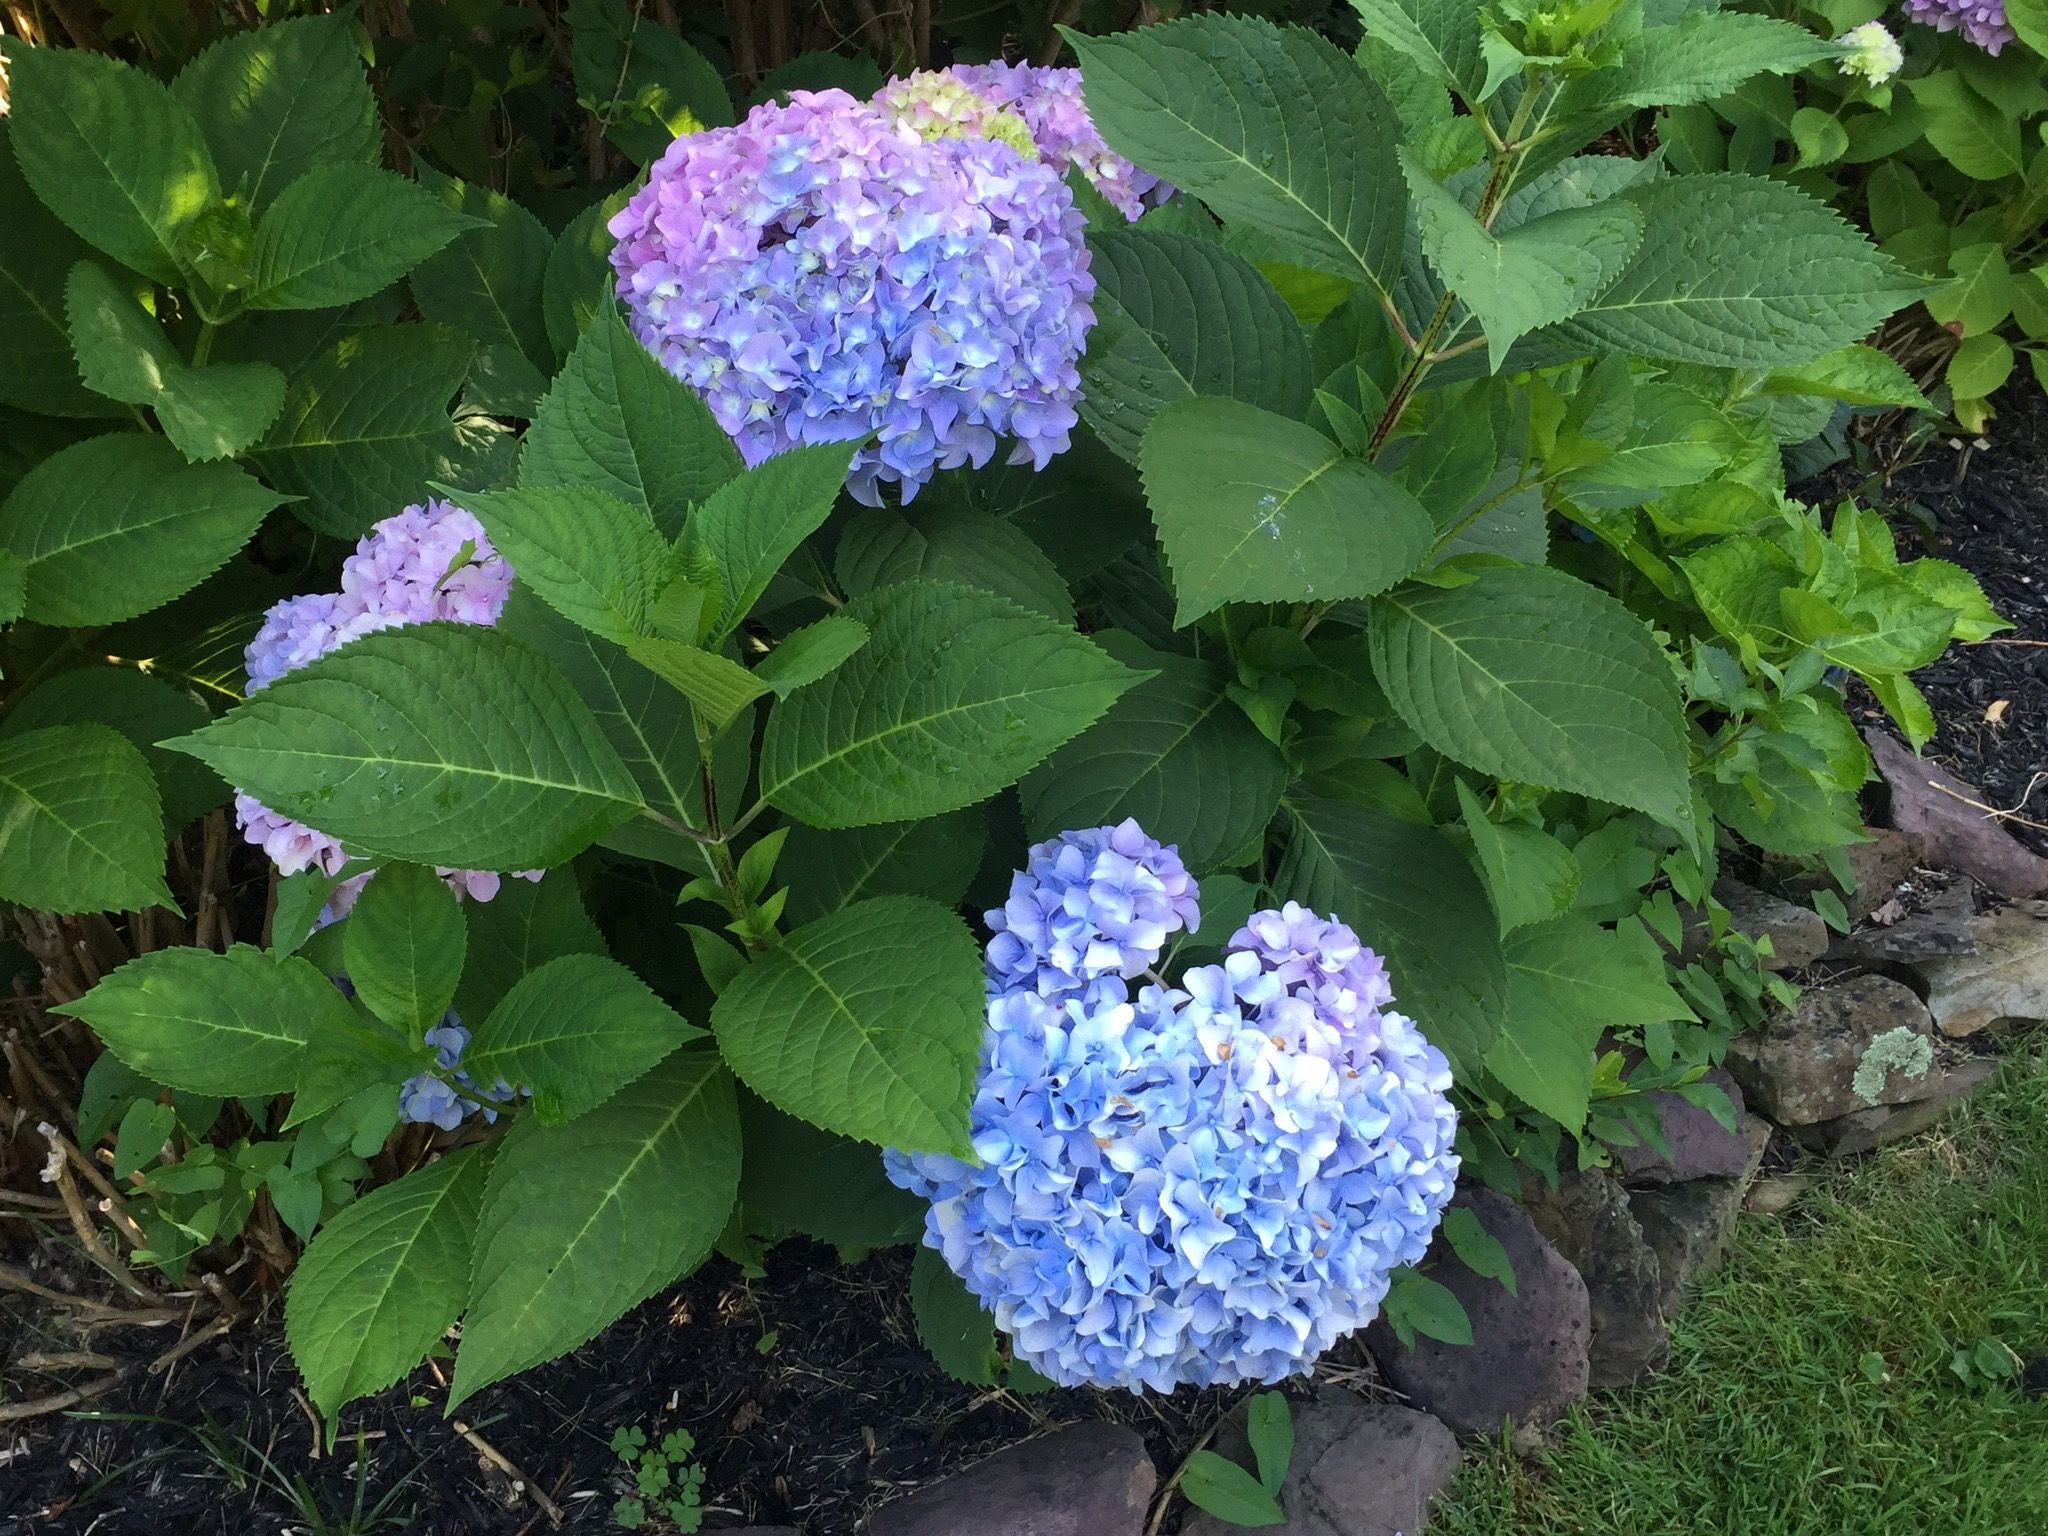 Hydrangea Or Hortensia Multiple Small White Flower Buds Surrounded With Large Thick Dark Green Leaves On Warm Sunn Flower Bud Small White Flowers White Flowers